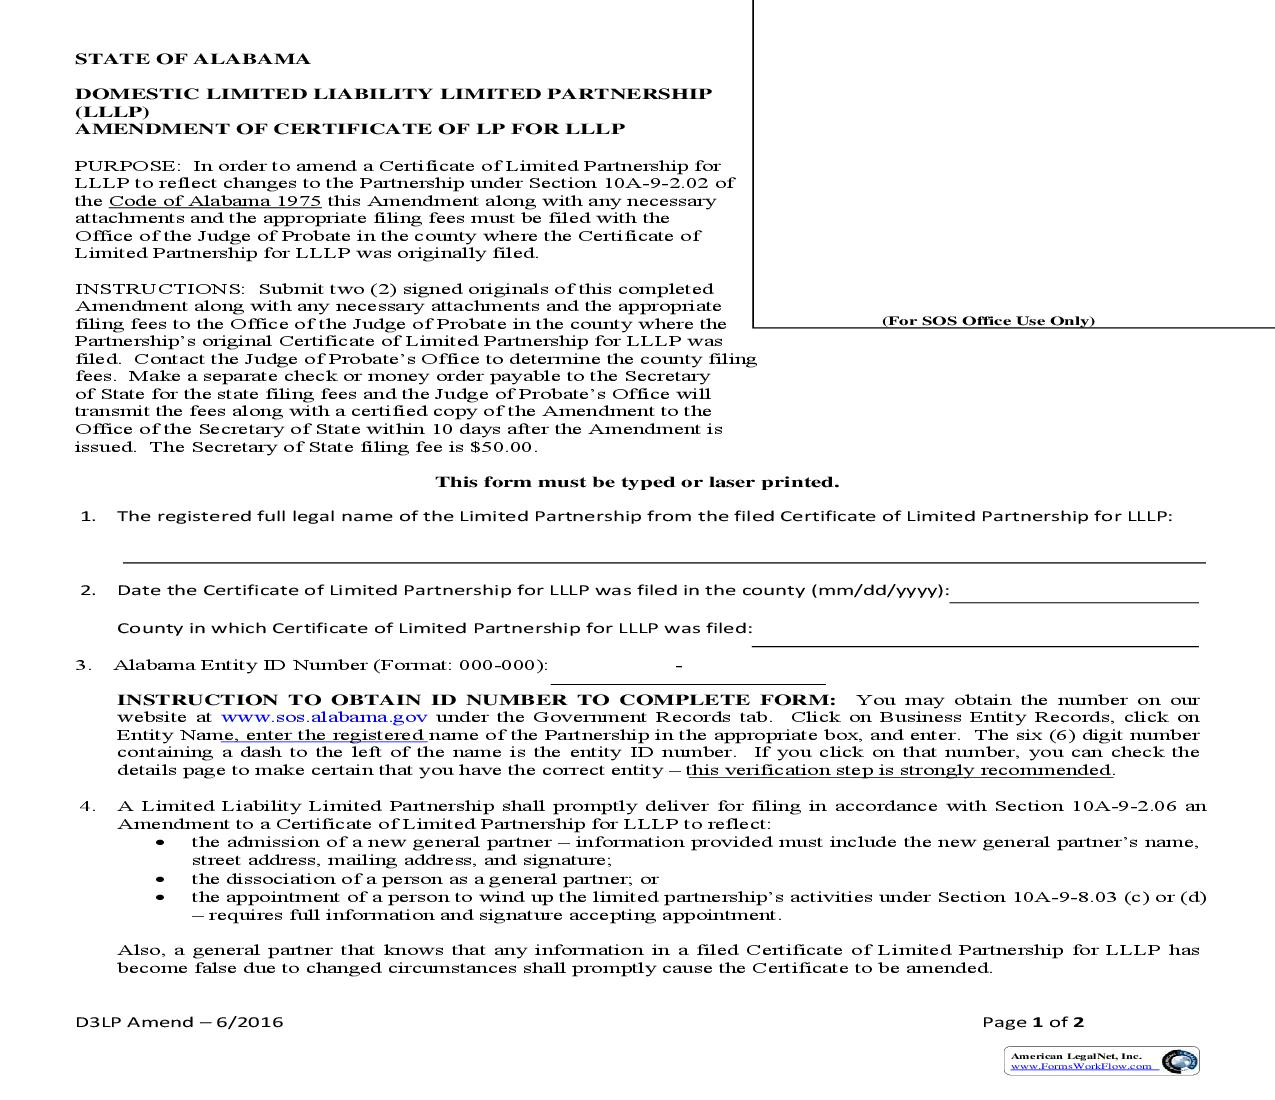 Amendment Of Certificate Of LP For LLLP (Domestic) |  | Alabama